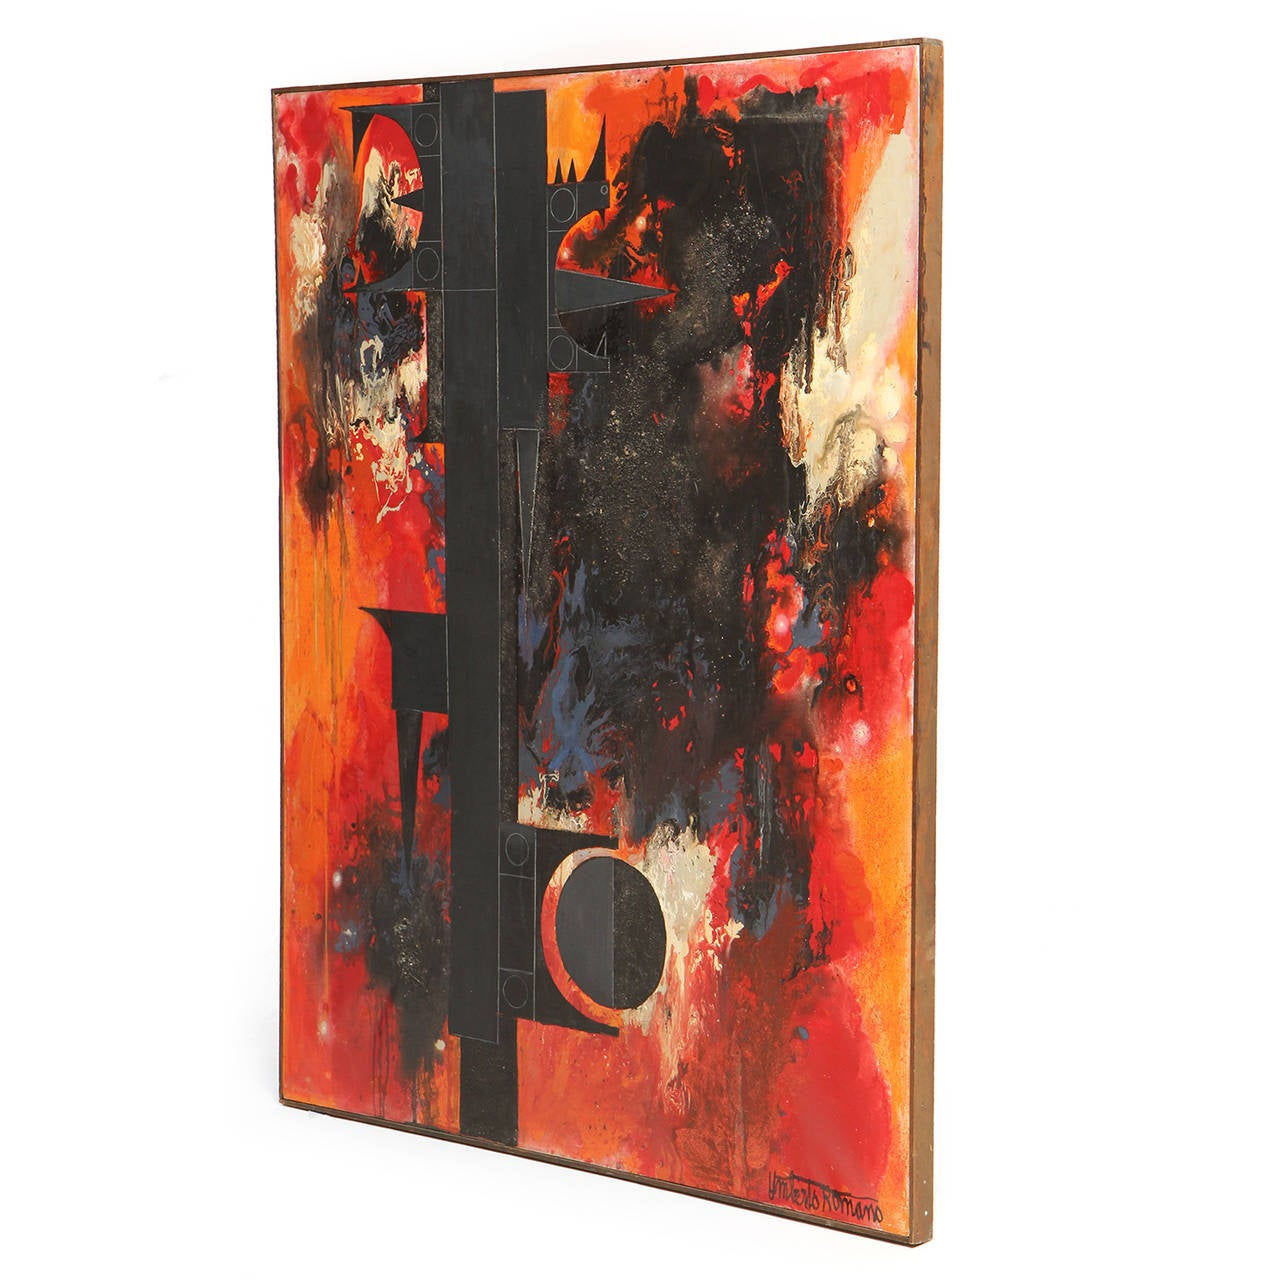 A graphic oil on canvas painting displaying a dynamic interplay between an expressionistic color-field of fire-toned hues and a totemic, geometric structure in black and gray. The painting retains its gallery stamp and is titled